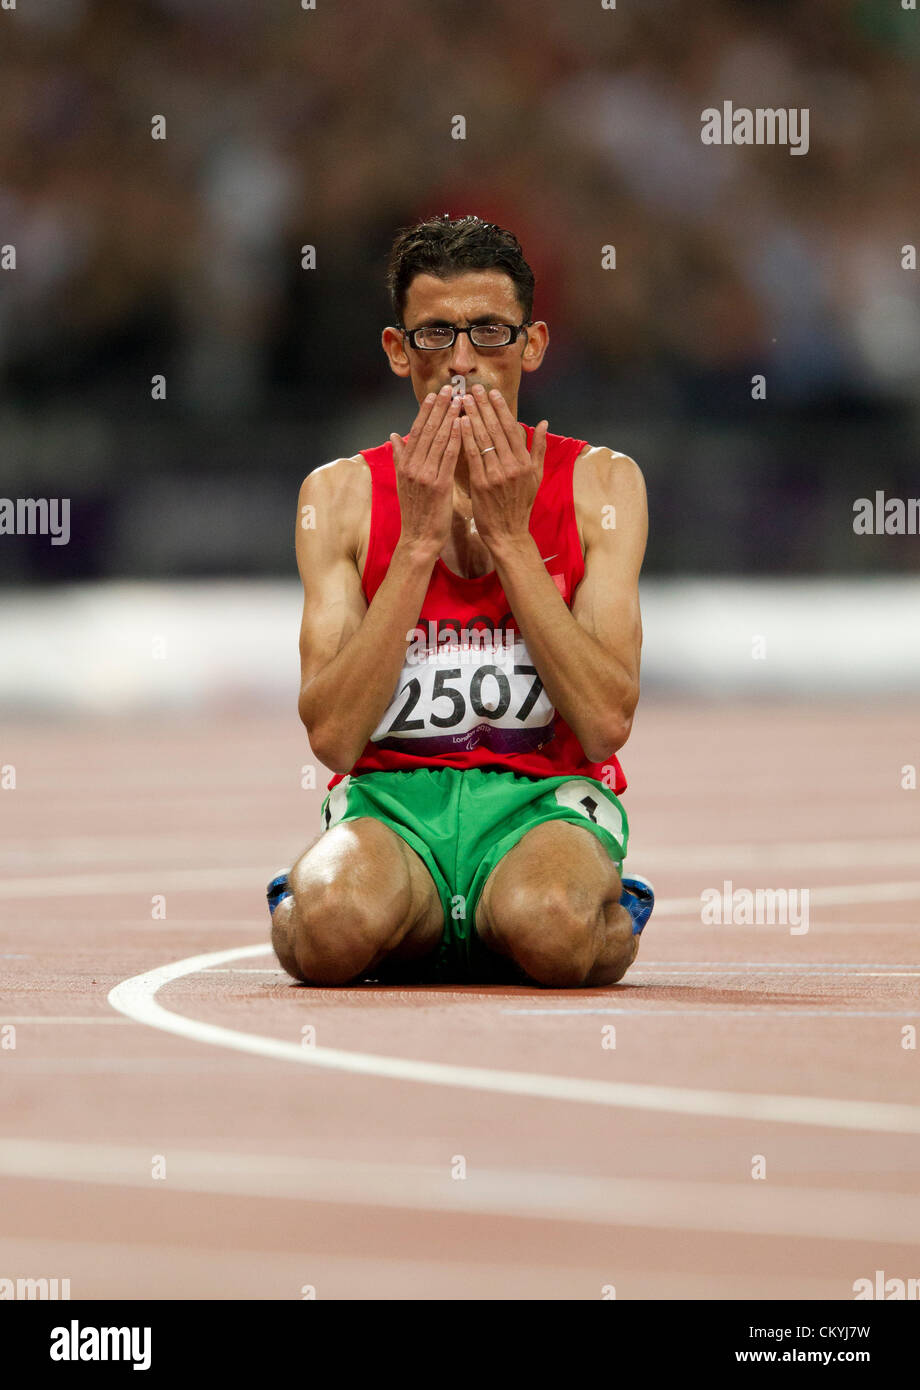 September 3, 2012 London, United Kingdom: El Amin Chentouf of Morocco (2507) sits on the Olympic track after winning - Stock Image